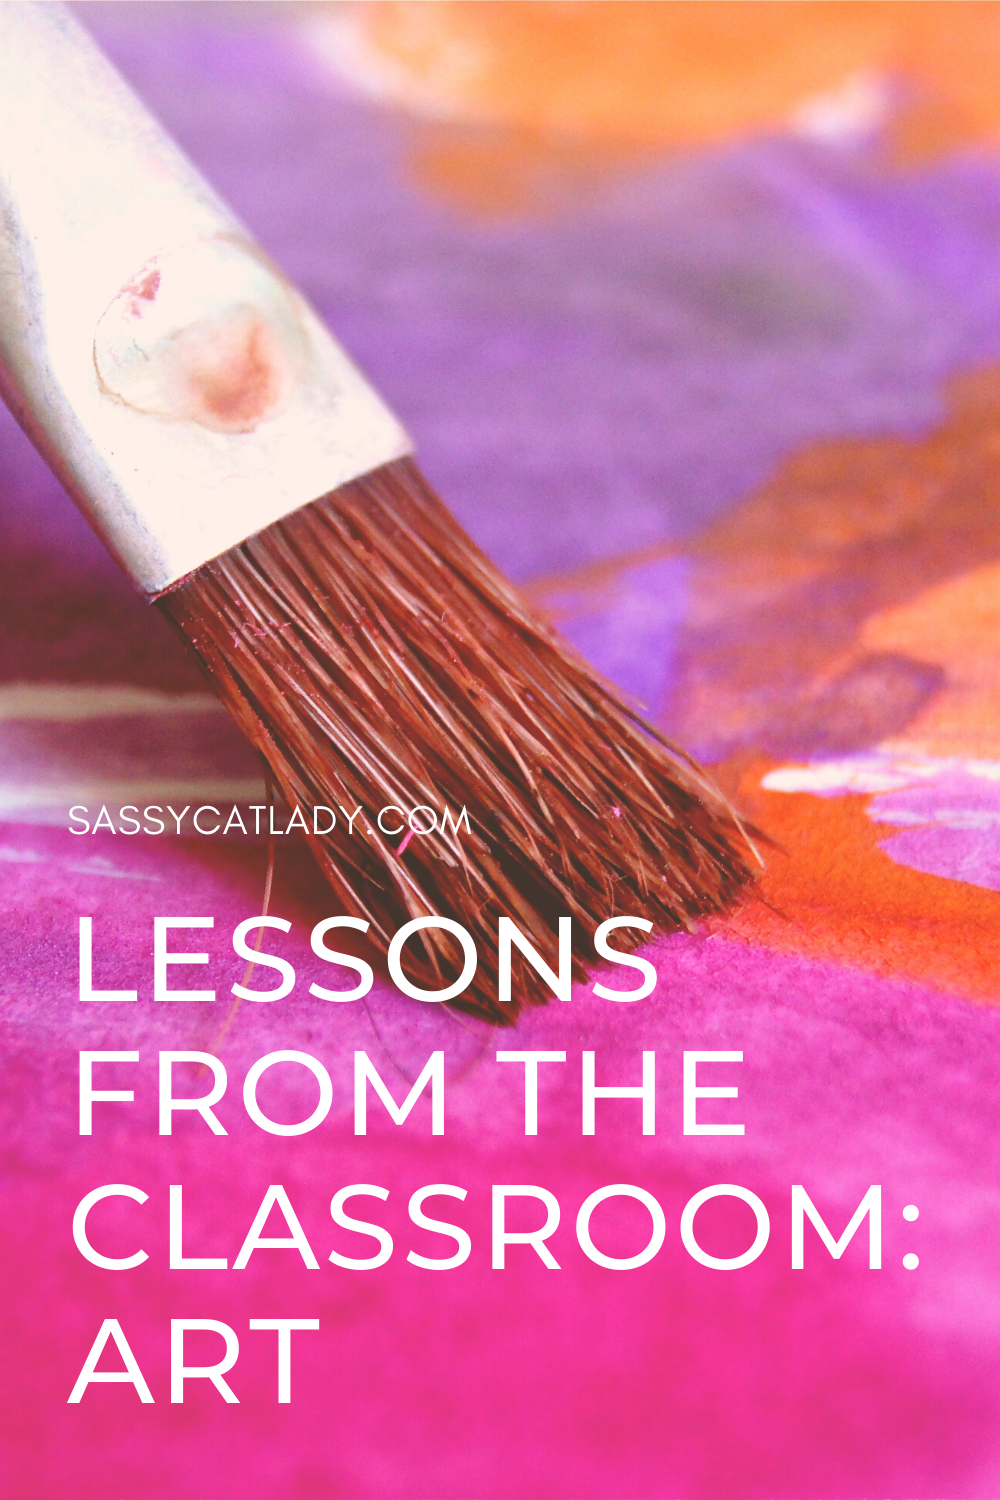 Lessons From the Classroom - Art Pinterest graphic